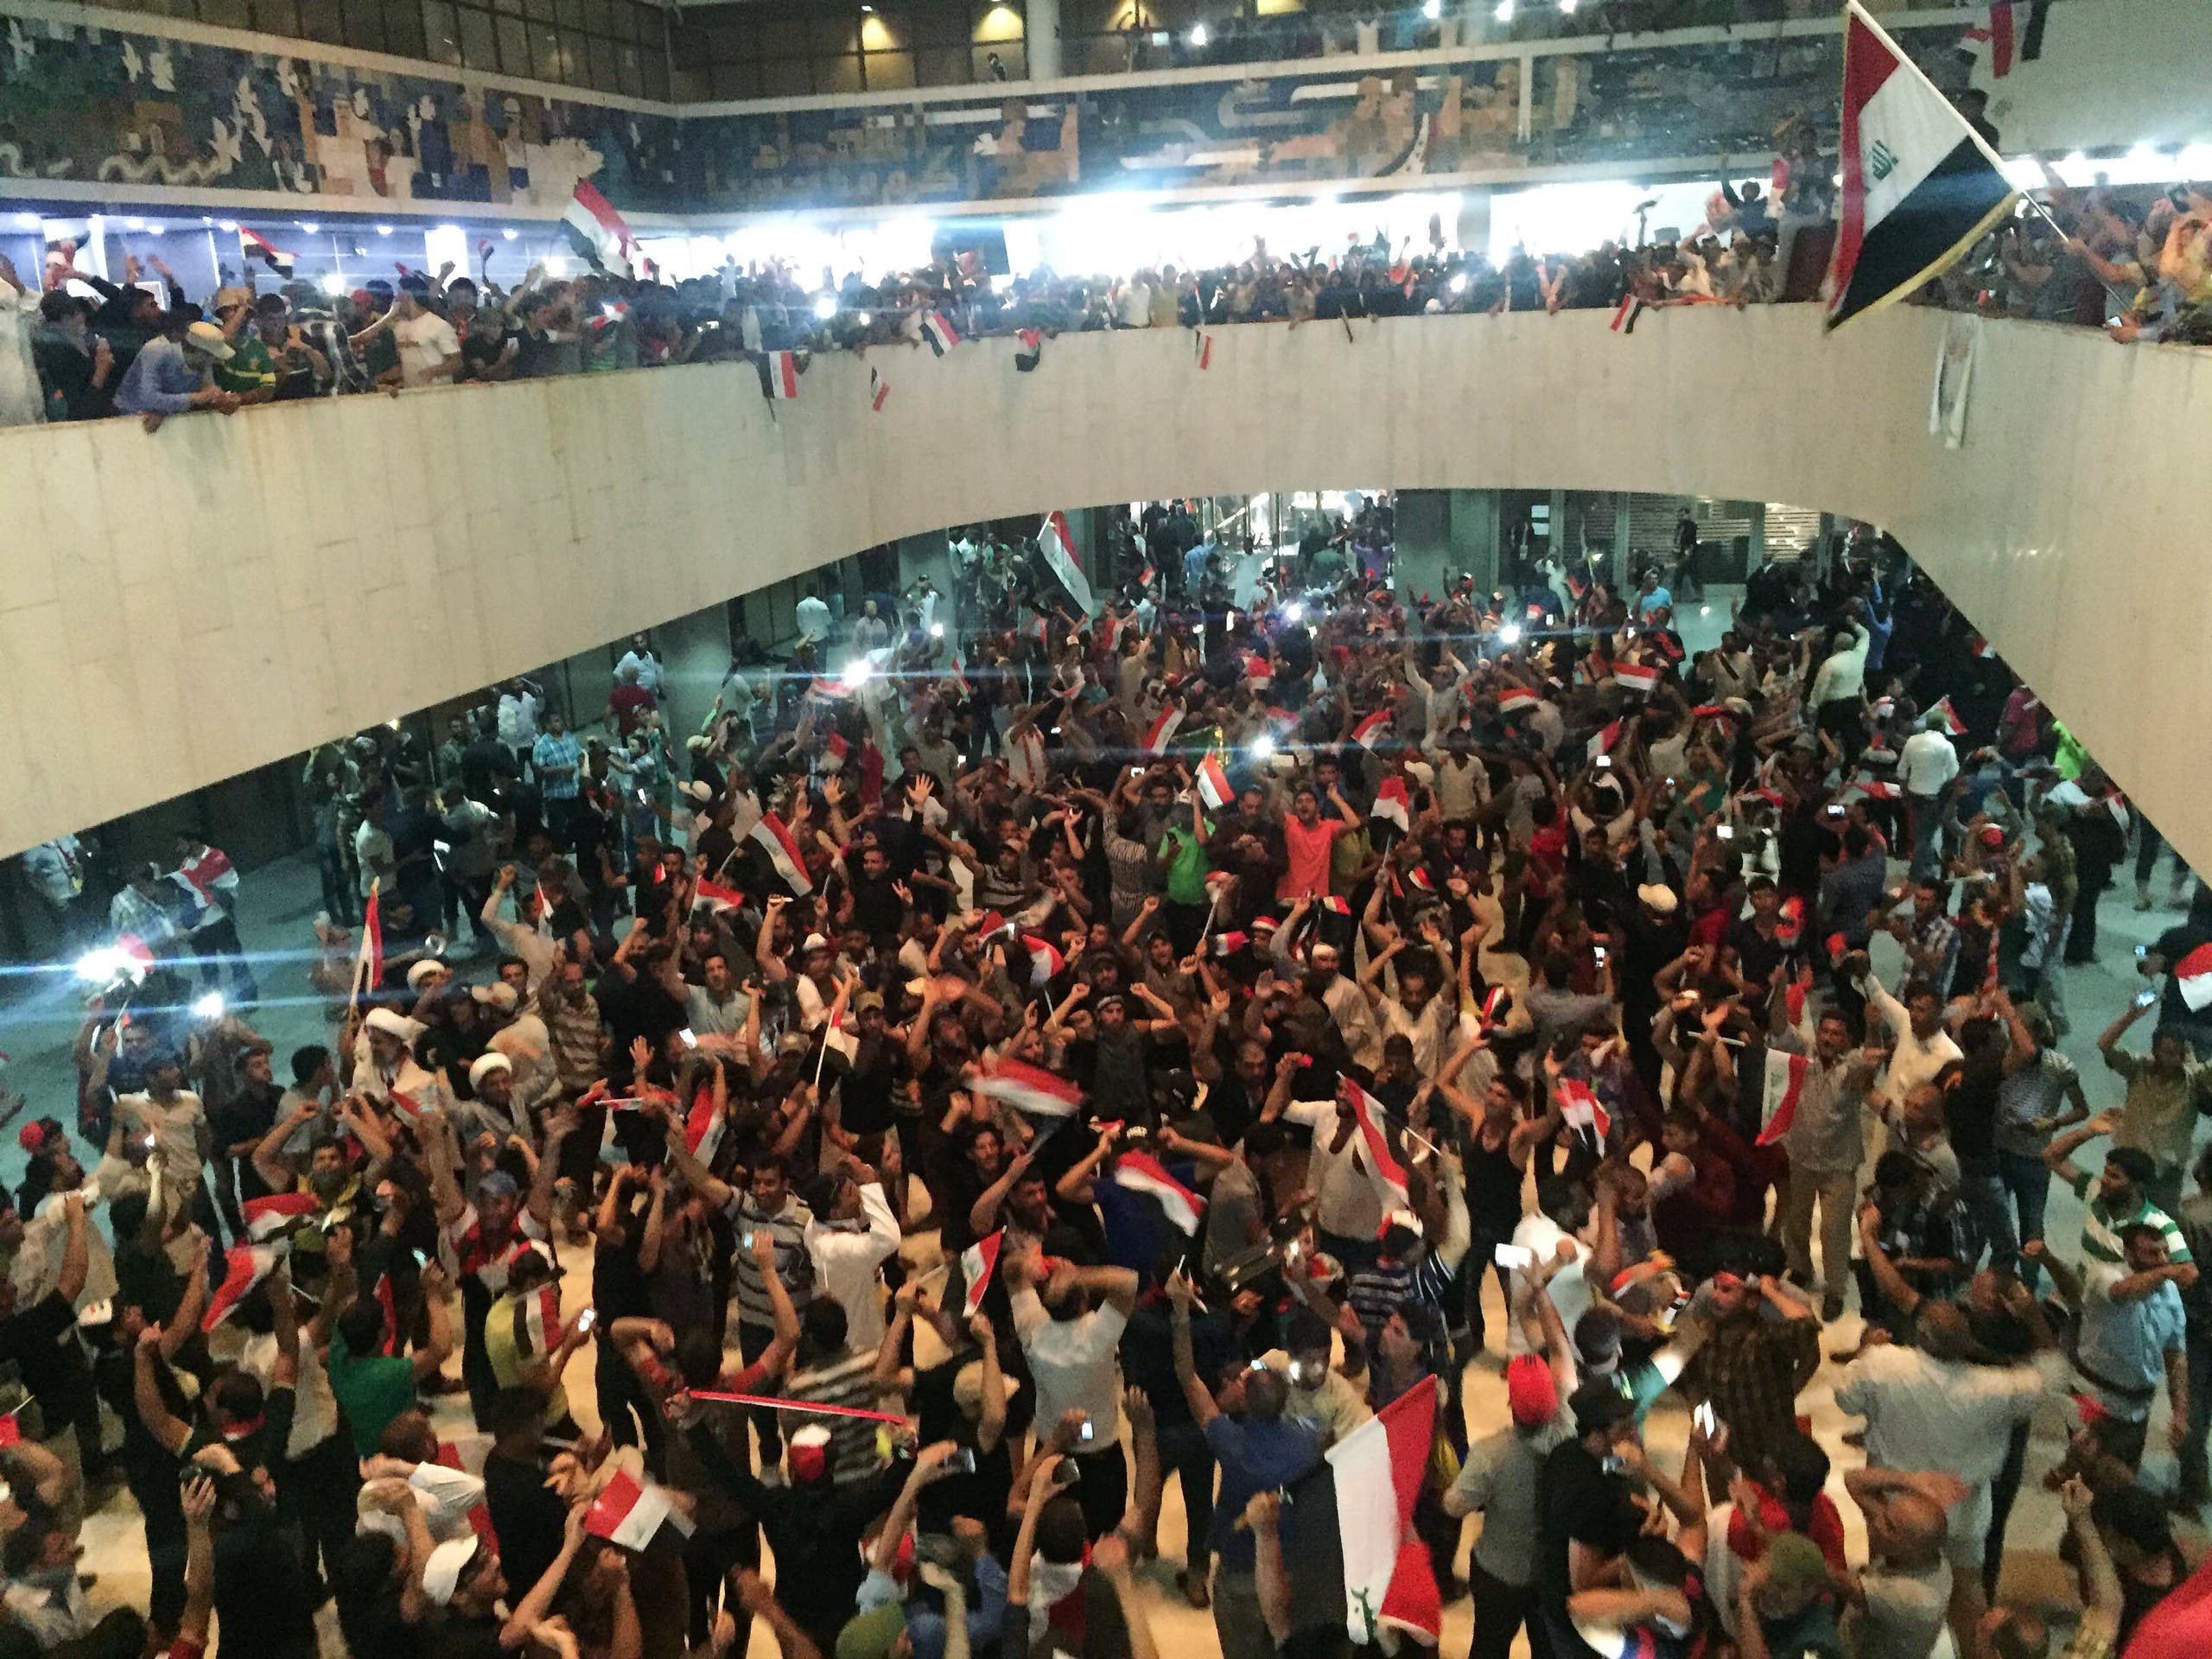 Followers of Iraq's Shiite cleric Moqtada al-Sadr are seen in the parliament building as they storm Baghdad's Green Zone after lawmakers failed to convene for a vote on overhauling the government, in Iraq April 30, 2016. (Reuters)